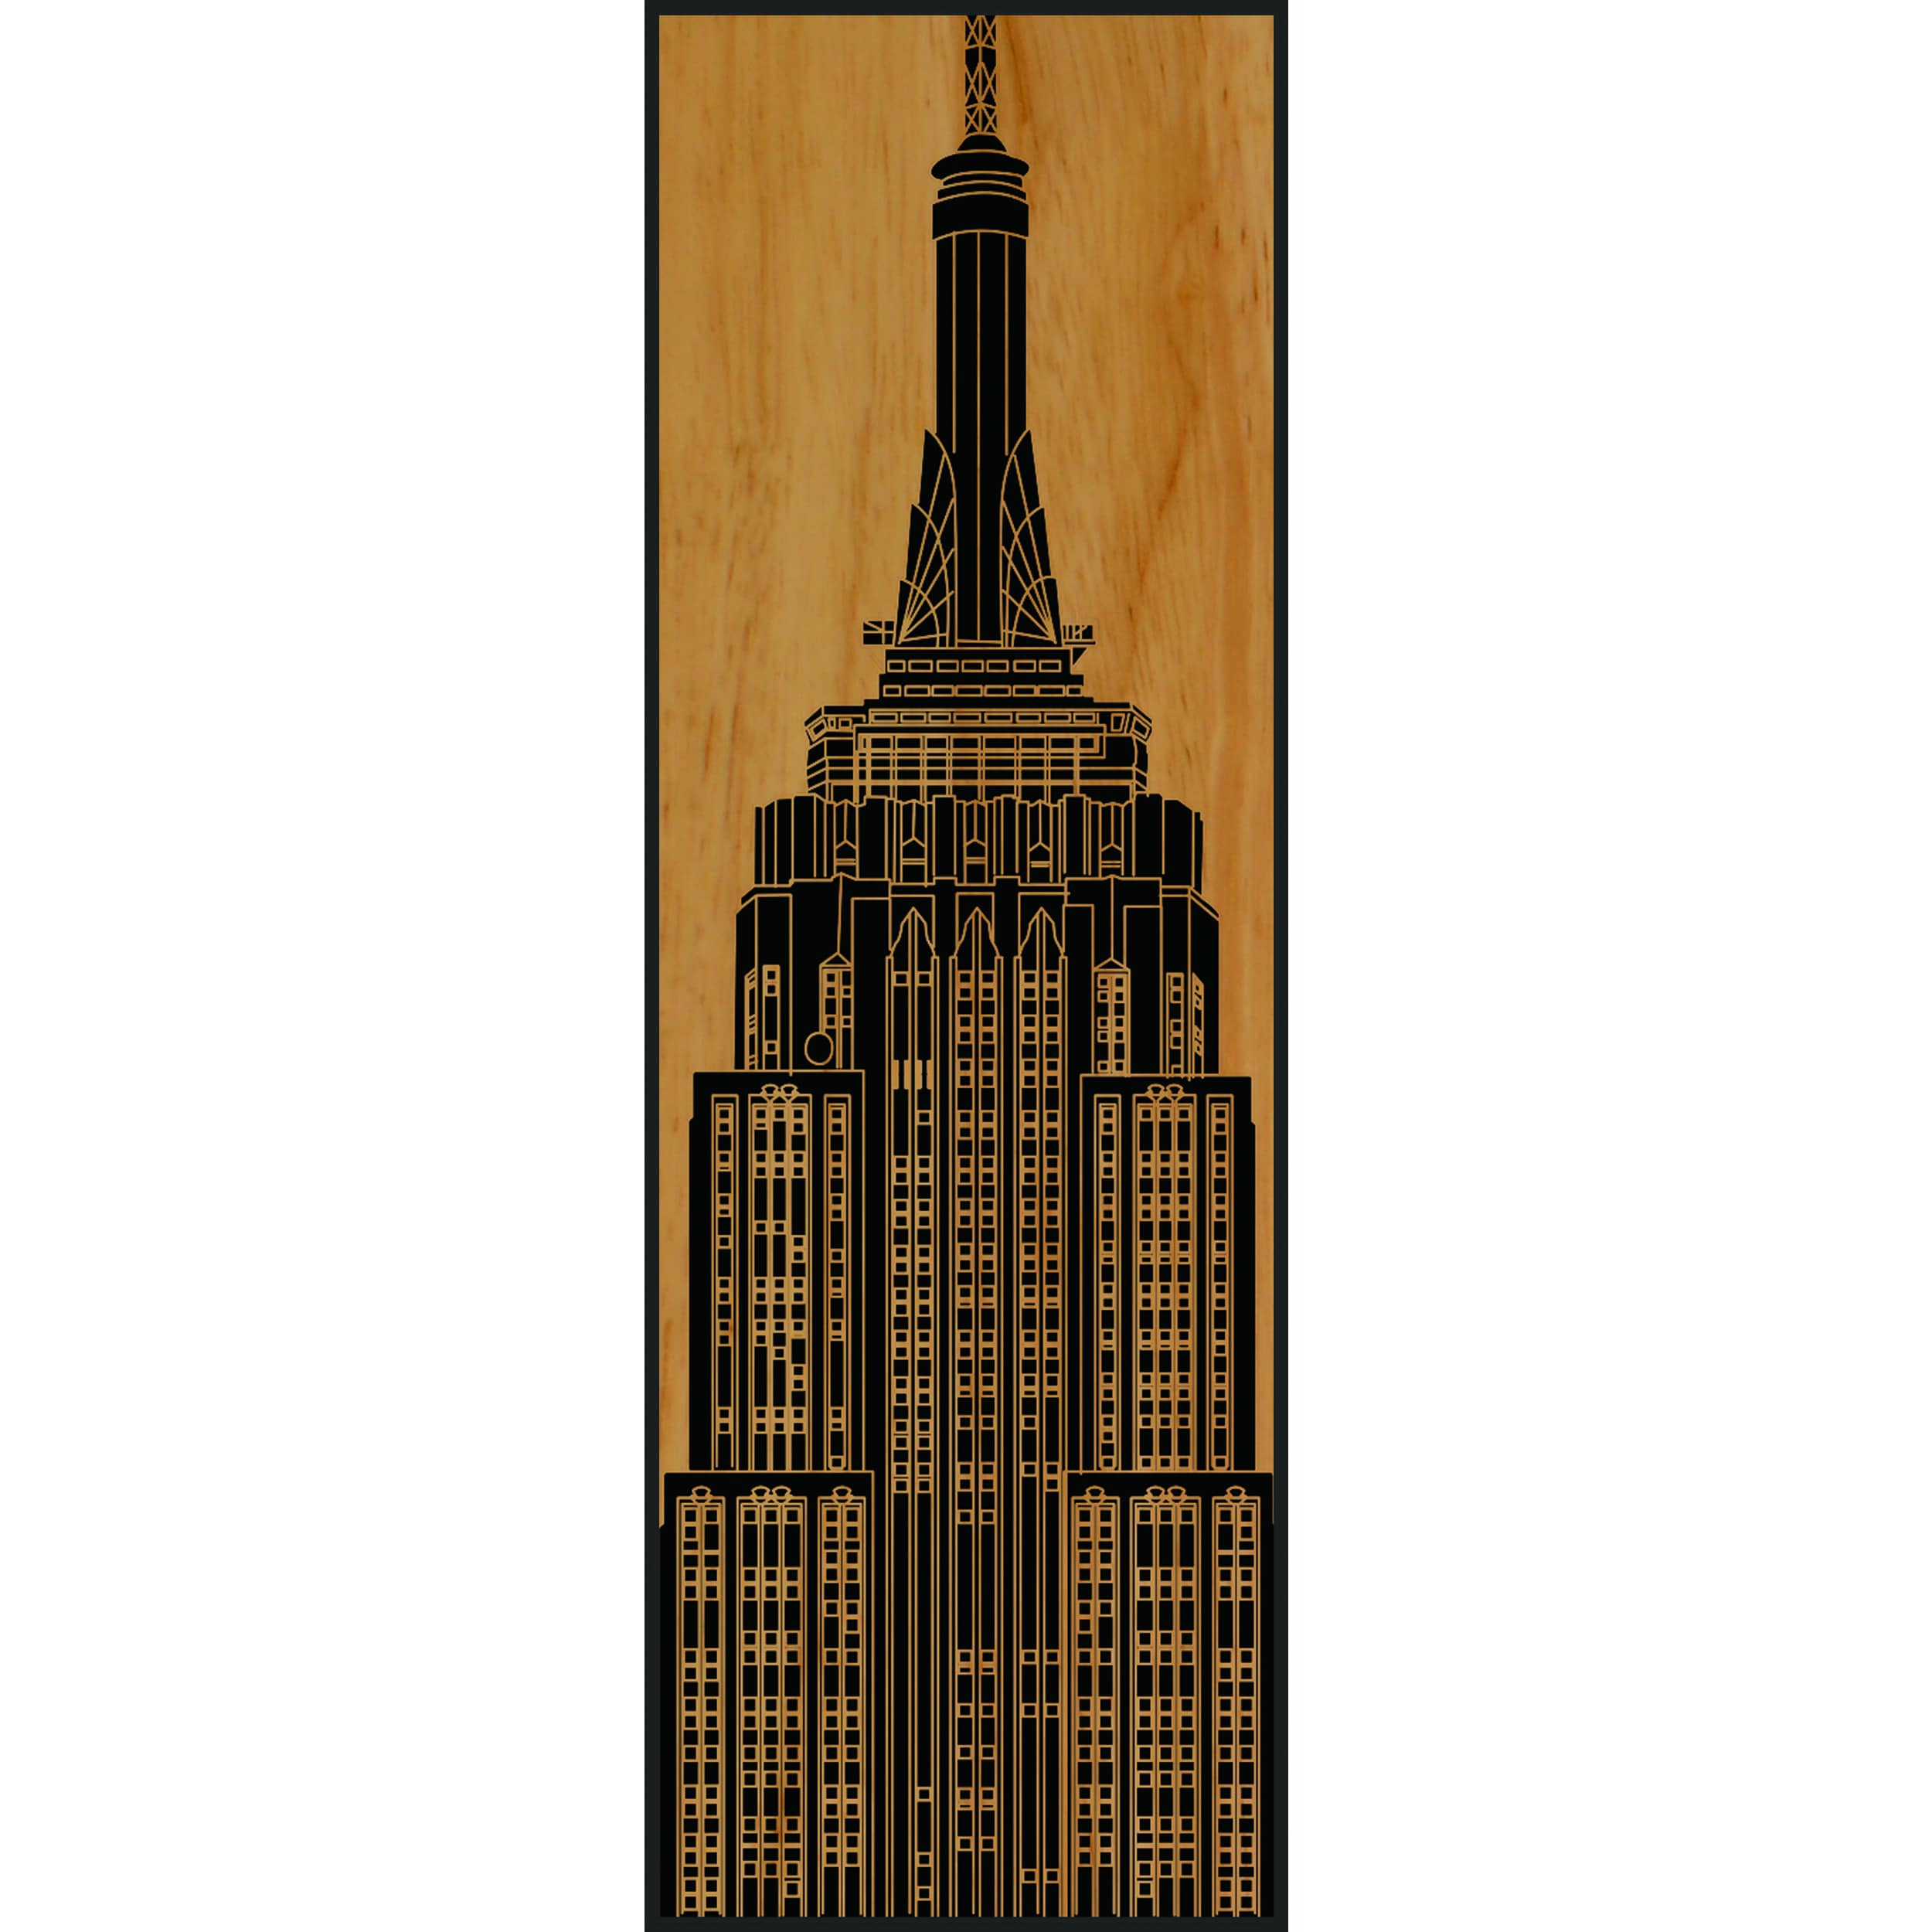 Shop Benjamin Parker Empire State Building 16 x 48 inch Wood